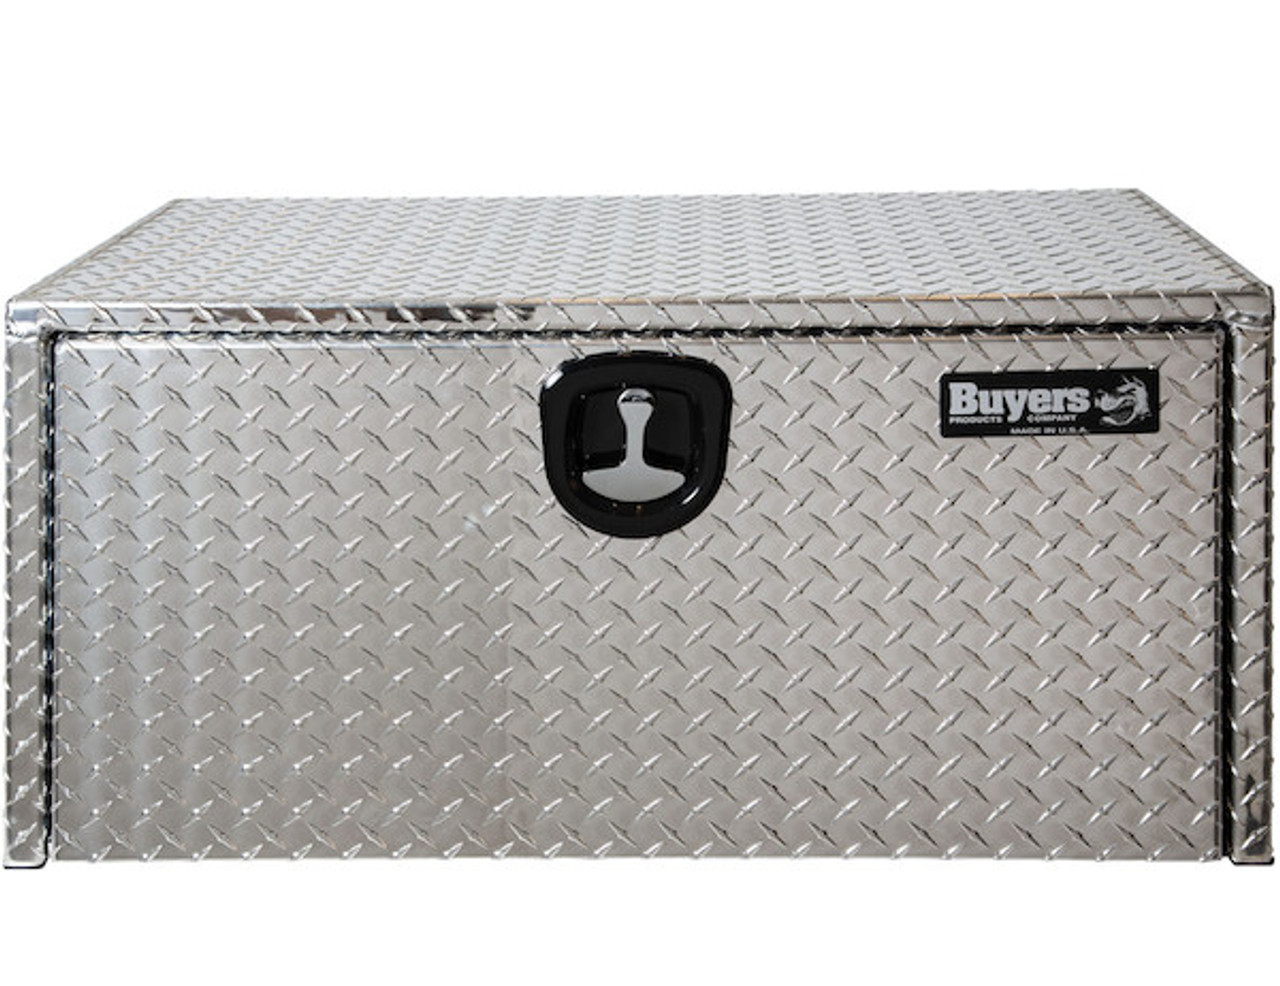 "1705118 BUYERS PRODUCTS DIAMOND TREAD ALUMINUM UNDERBODY TRUCK TOOLBOX 20""HX20""DX36""W"